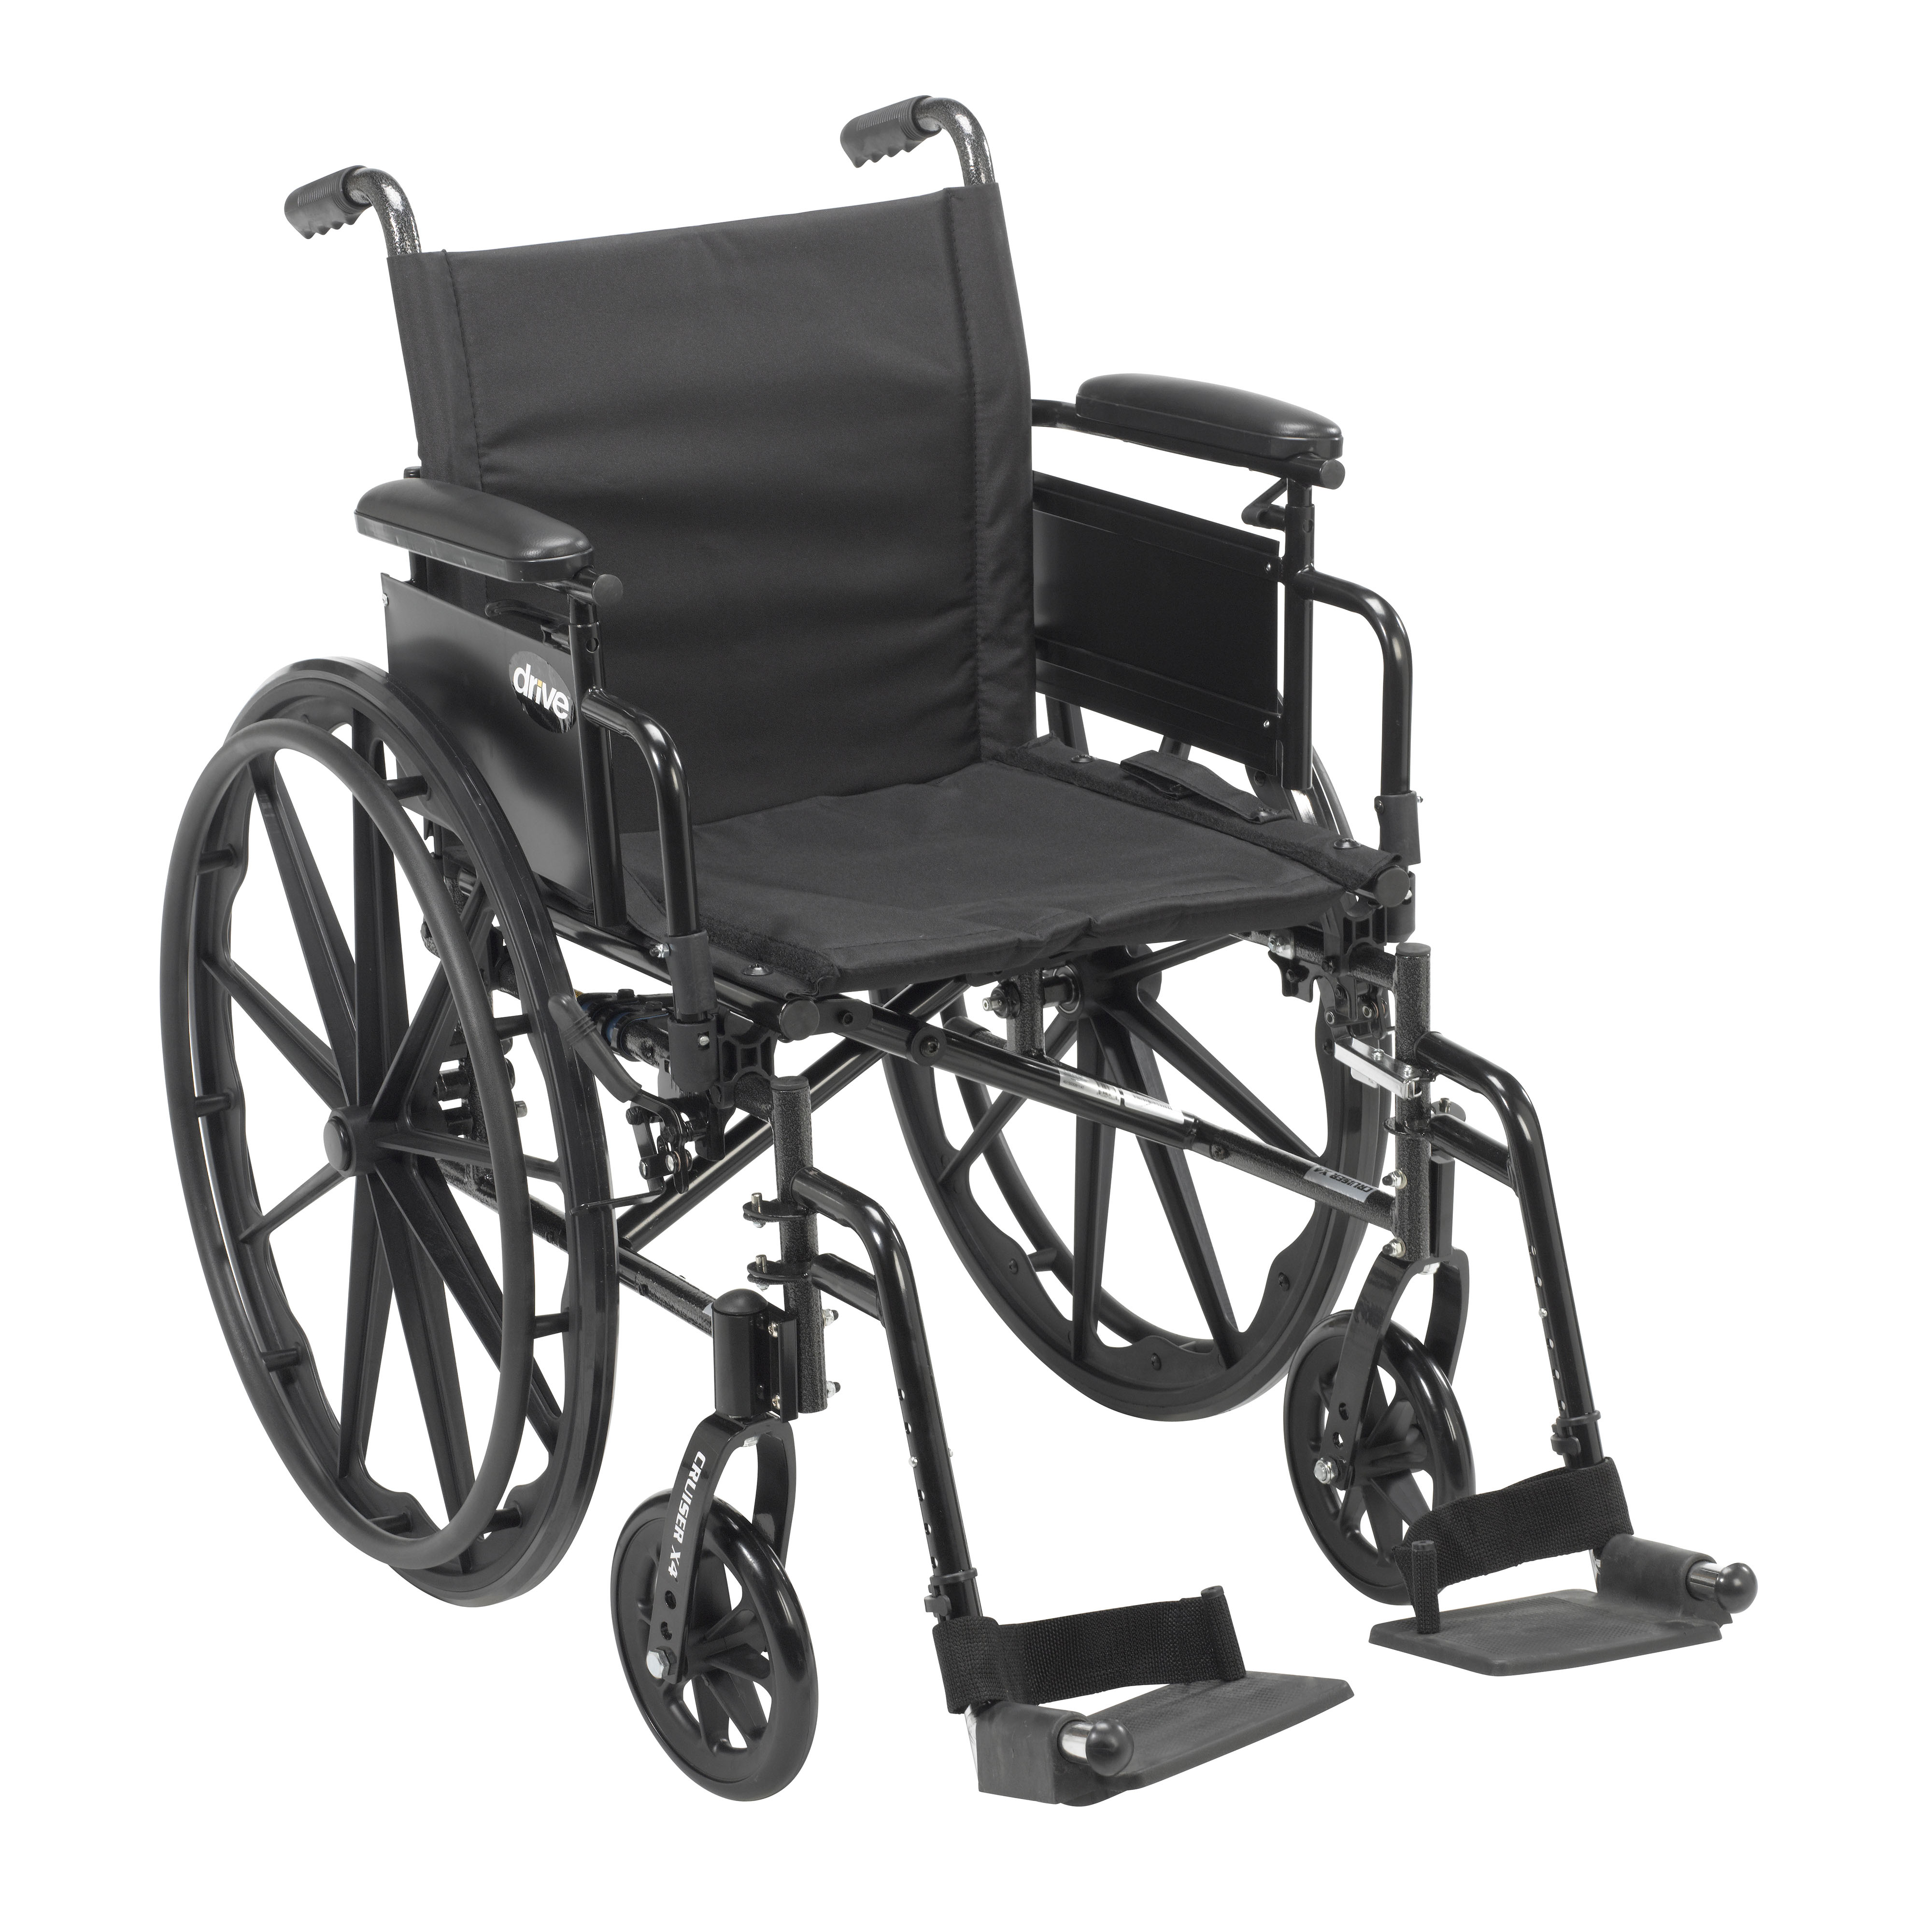 """Cruiser X4 Lightweight Dual Axle Wheelchair with Adjustable Detachable Arms, Desk Arms, Swing Away Footrests, 16"""" Seat"""